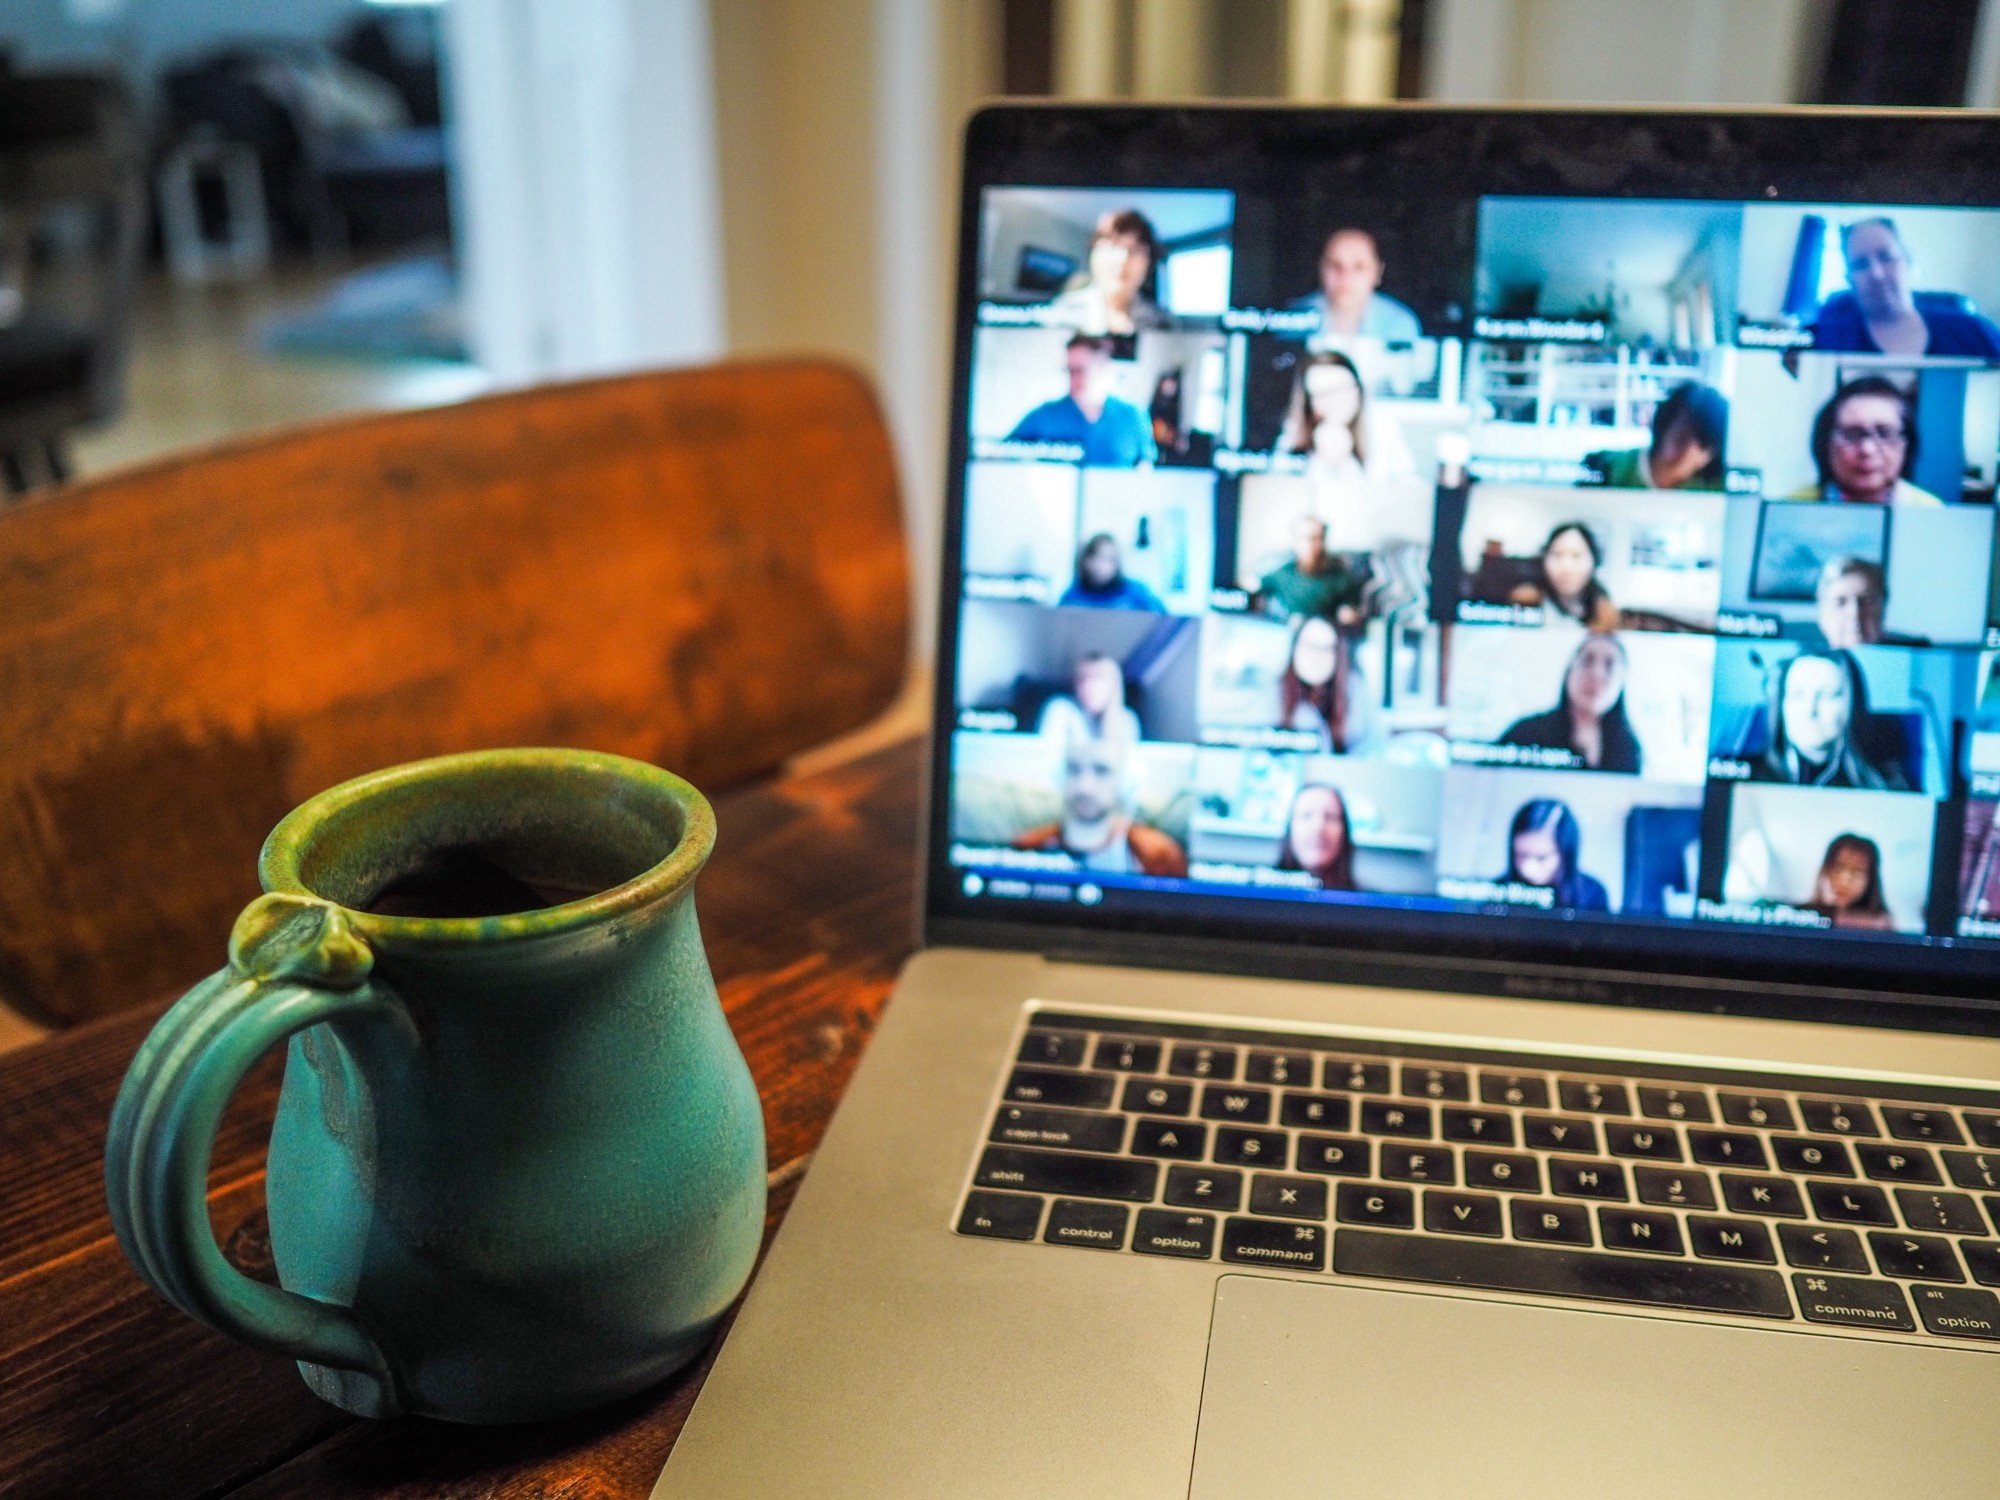 A picture depicting a remote meeting with several people using Google Hangout